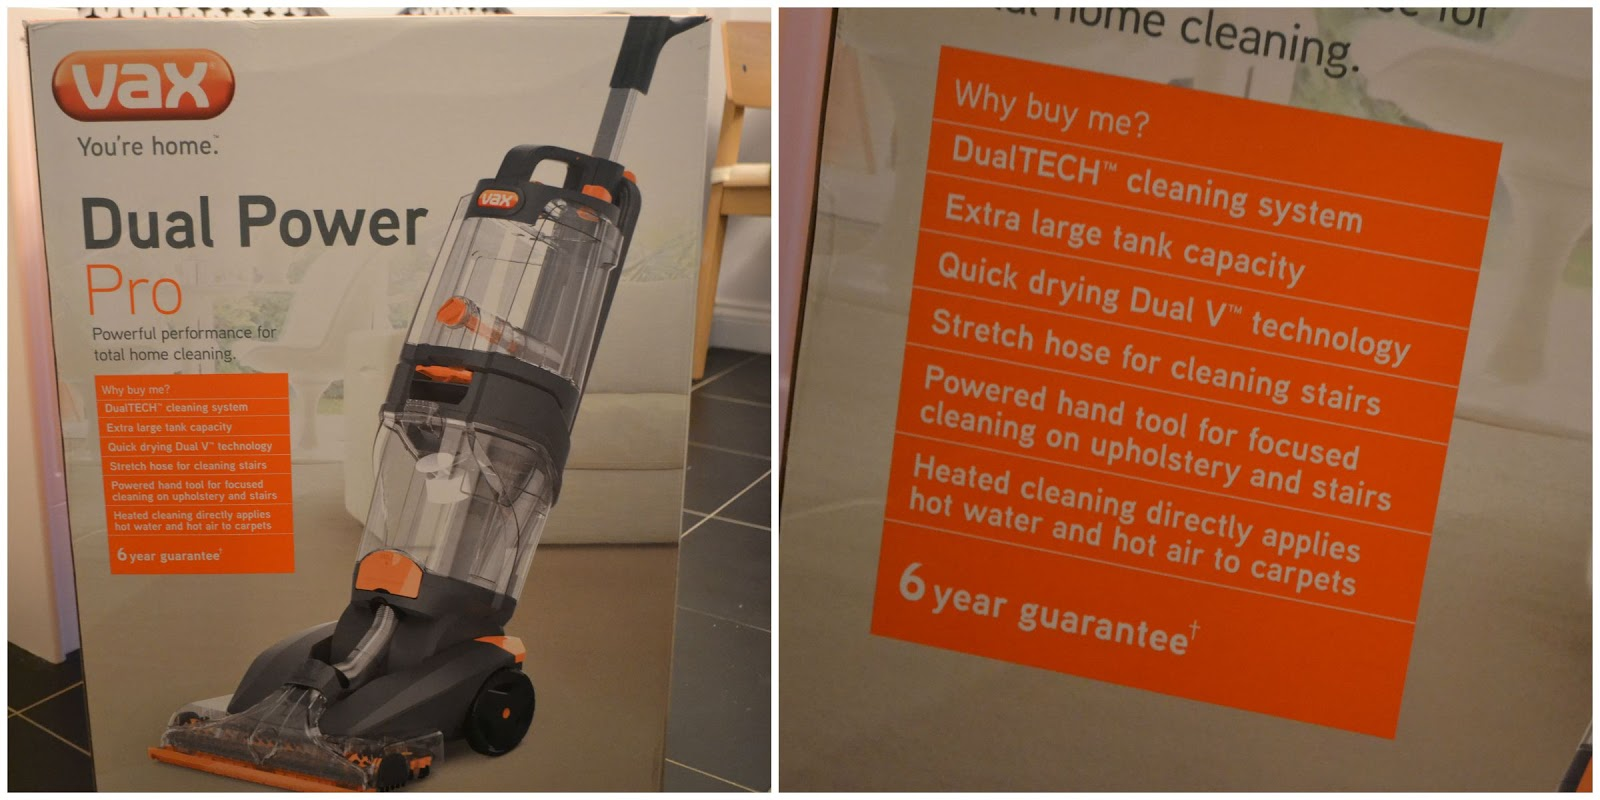 Vax Dual Power Pro Carpet Cleaner Review Rock And Roll Pussycat